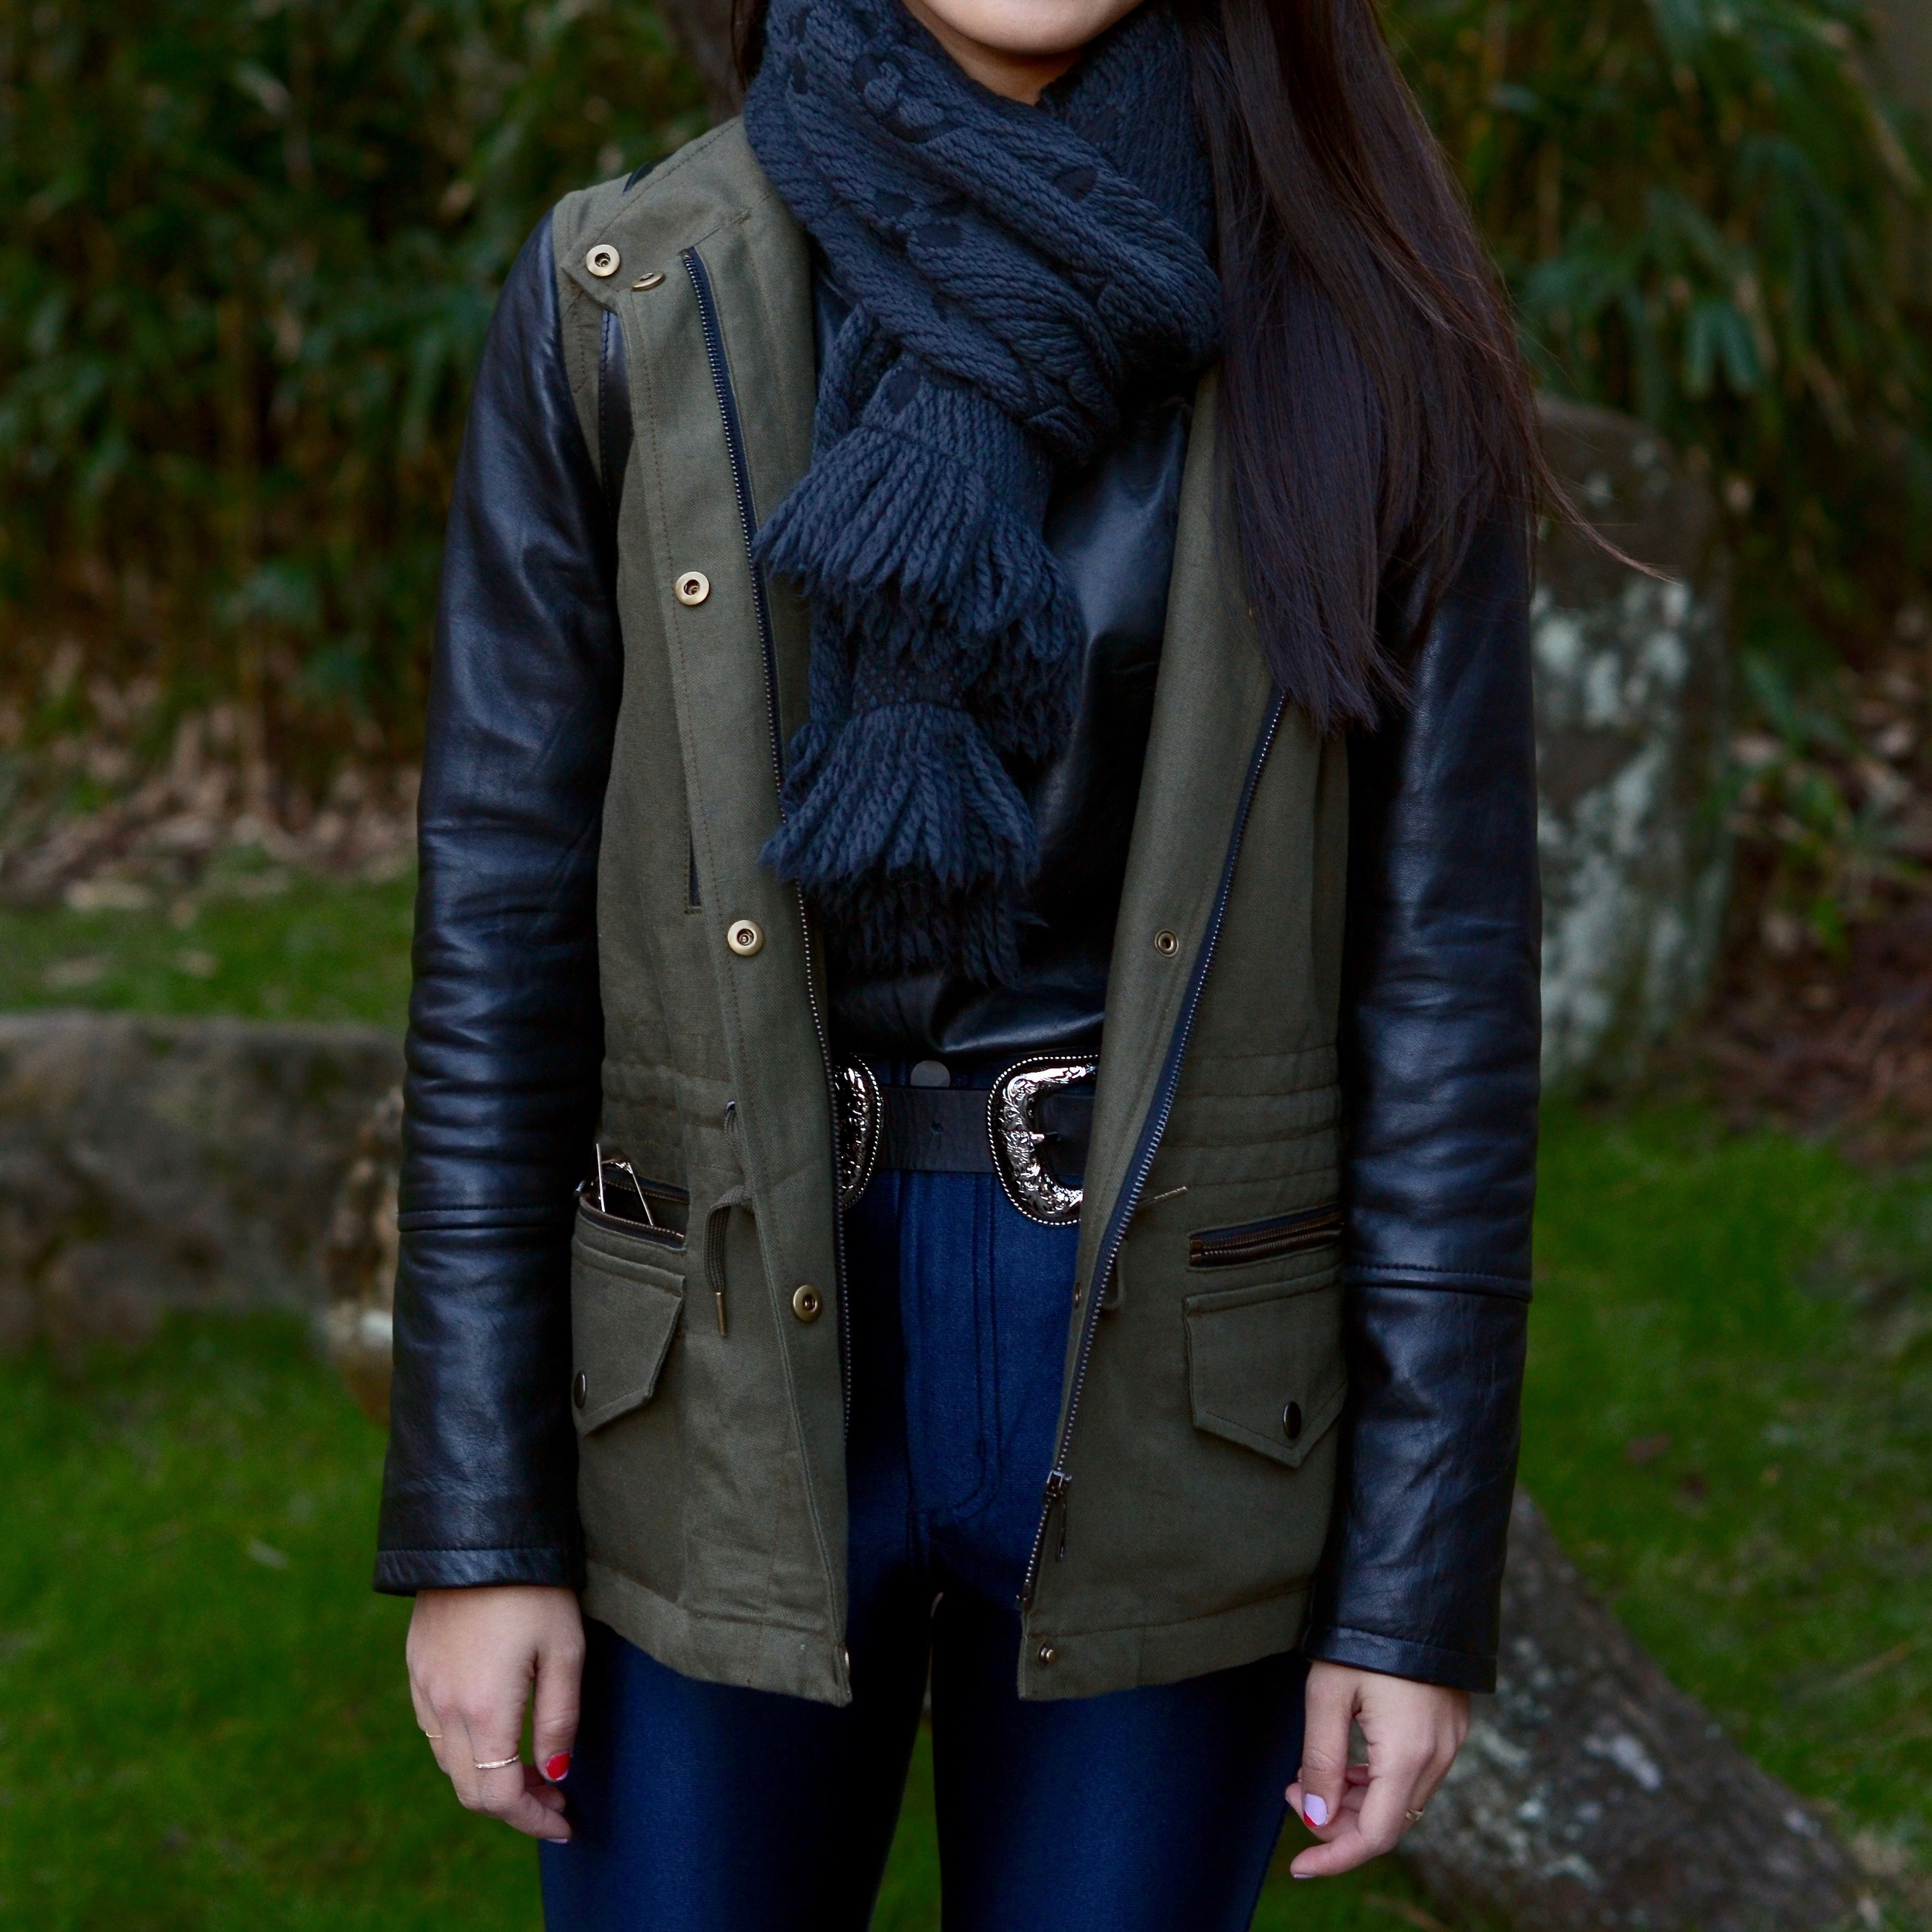 Just Goh With It-Outfits-club-monaco-parka-american-apparel-disco-metallic-pants-b-low-the-belt-all-saints-over-the-knee-boots-louis-vuitton-scarf-6.jpg